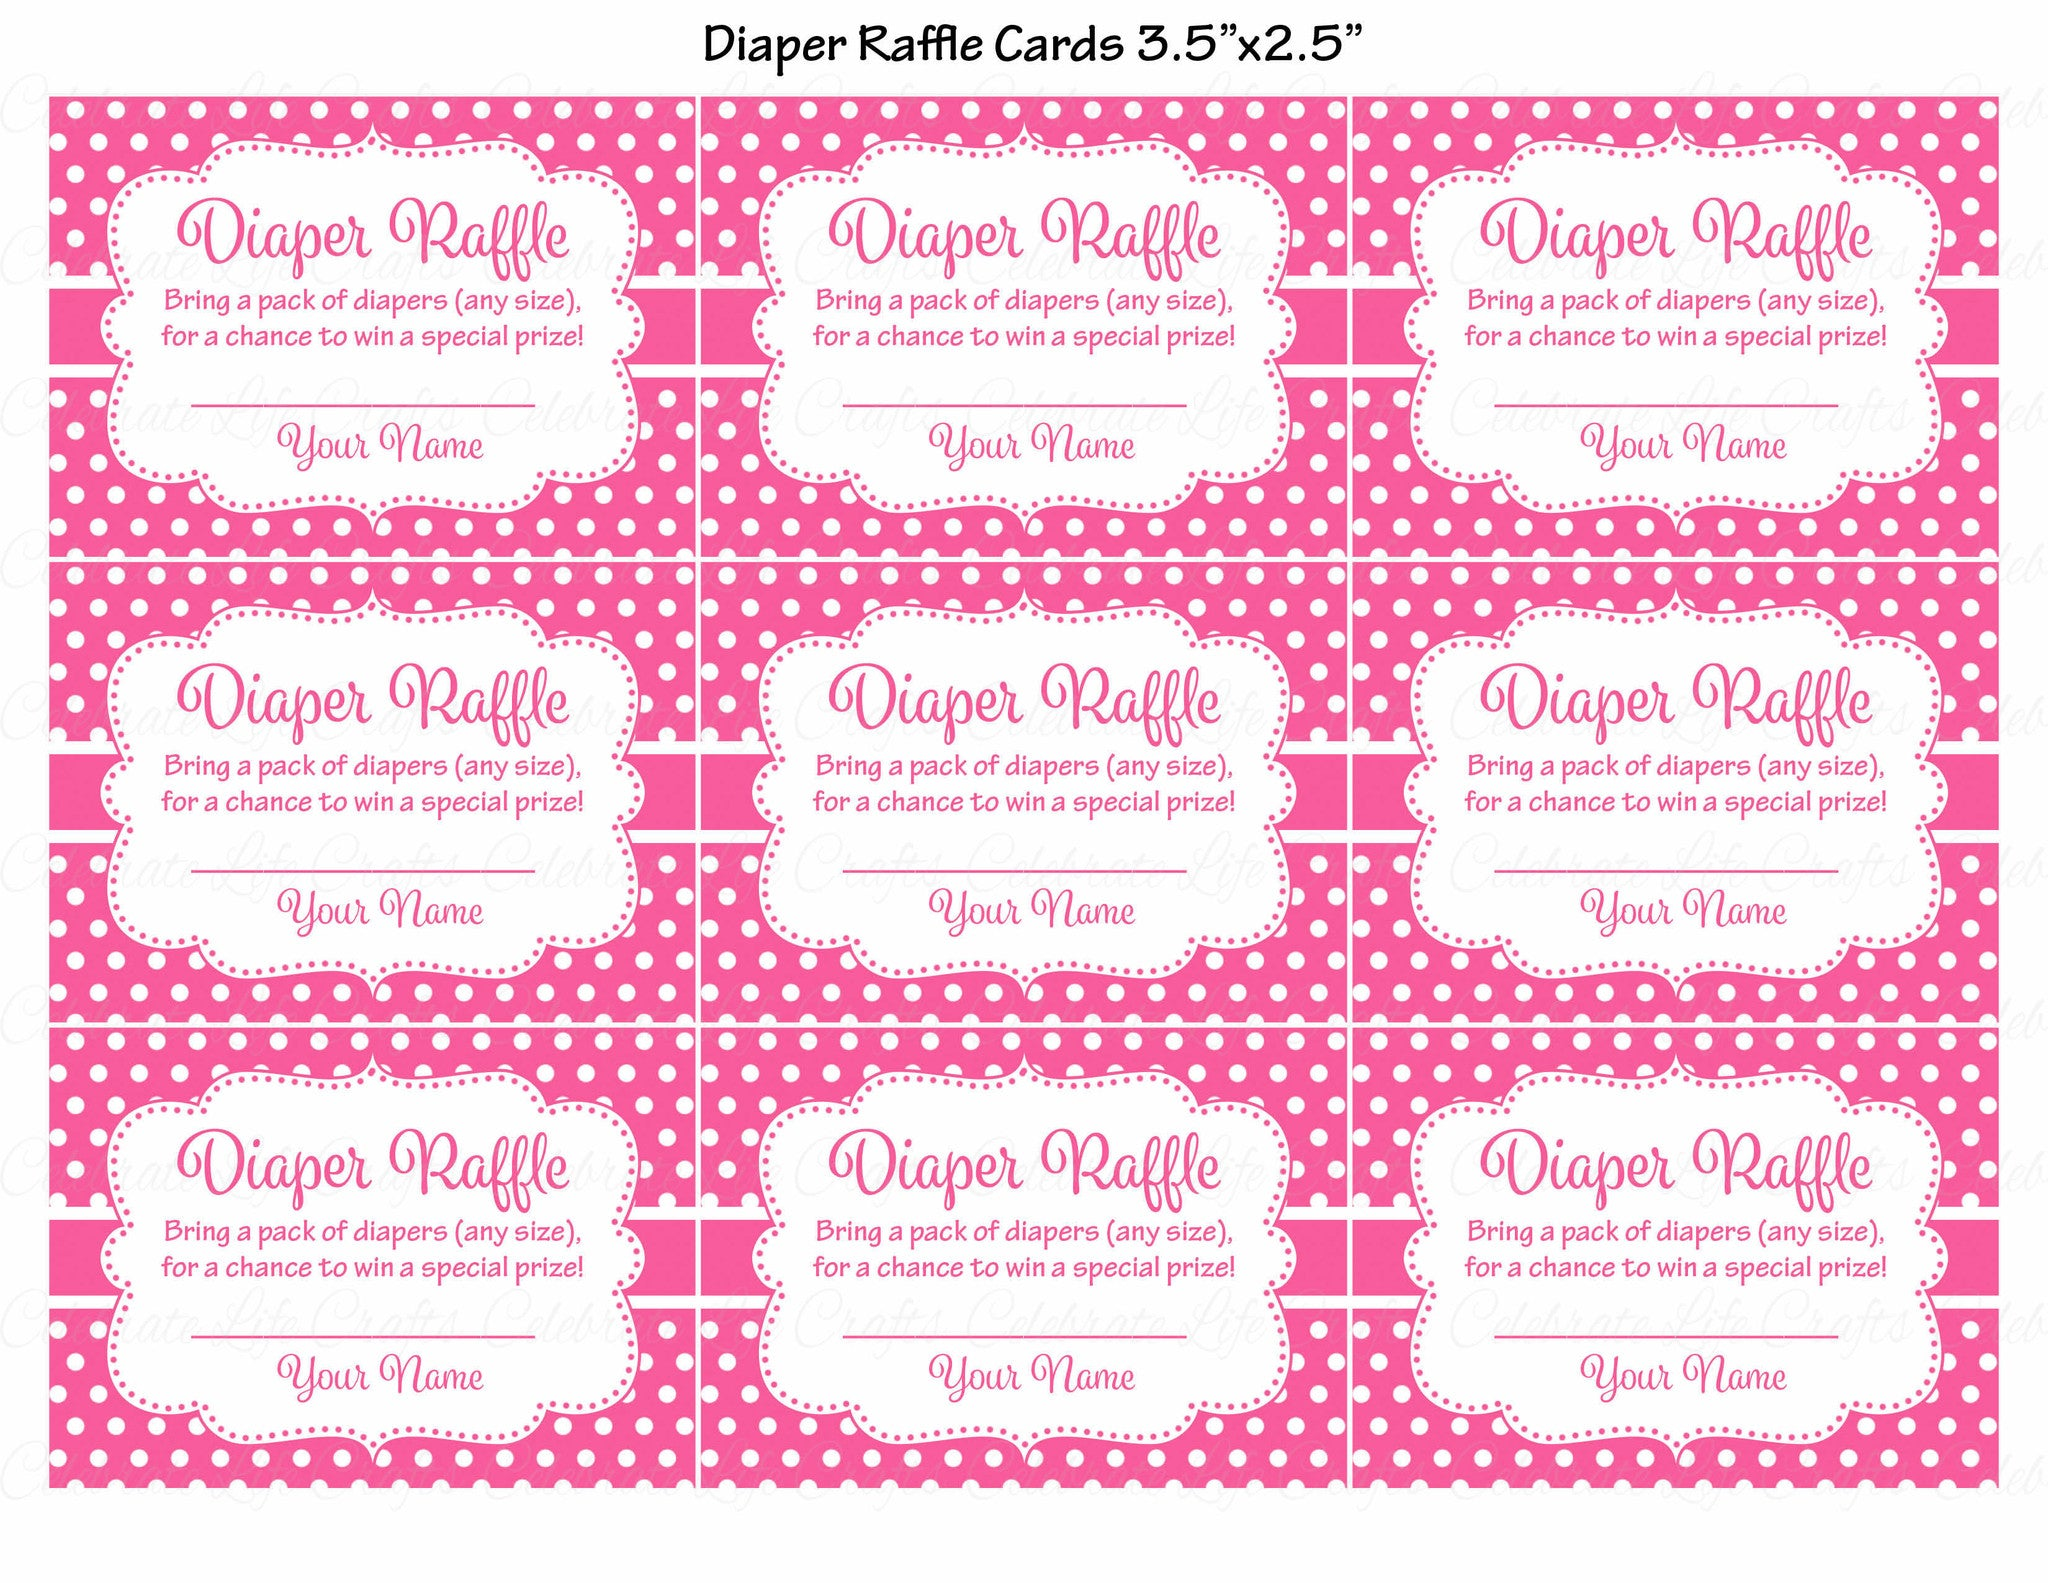 Diaper Raffle Tickets for Baby Shower Owl Baby Shower Theme for